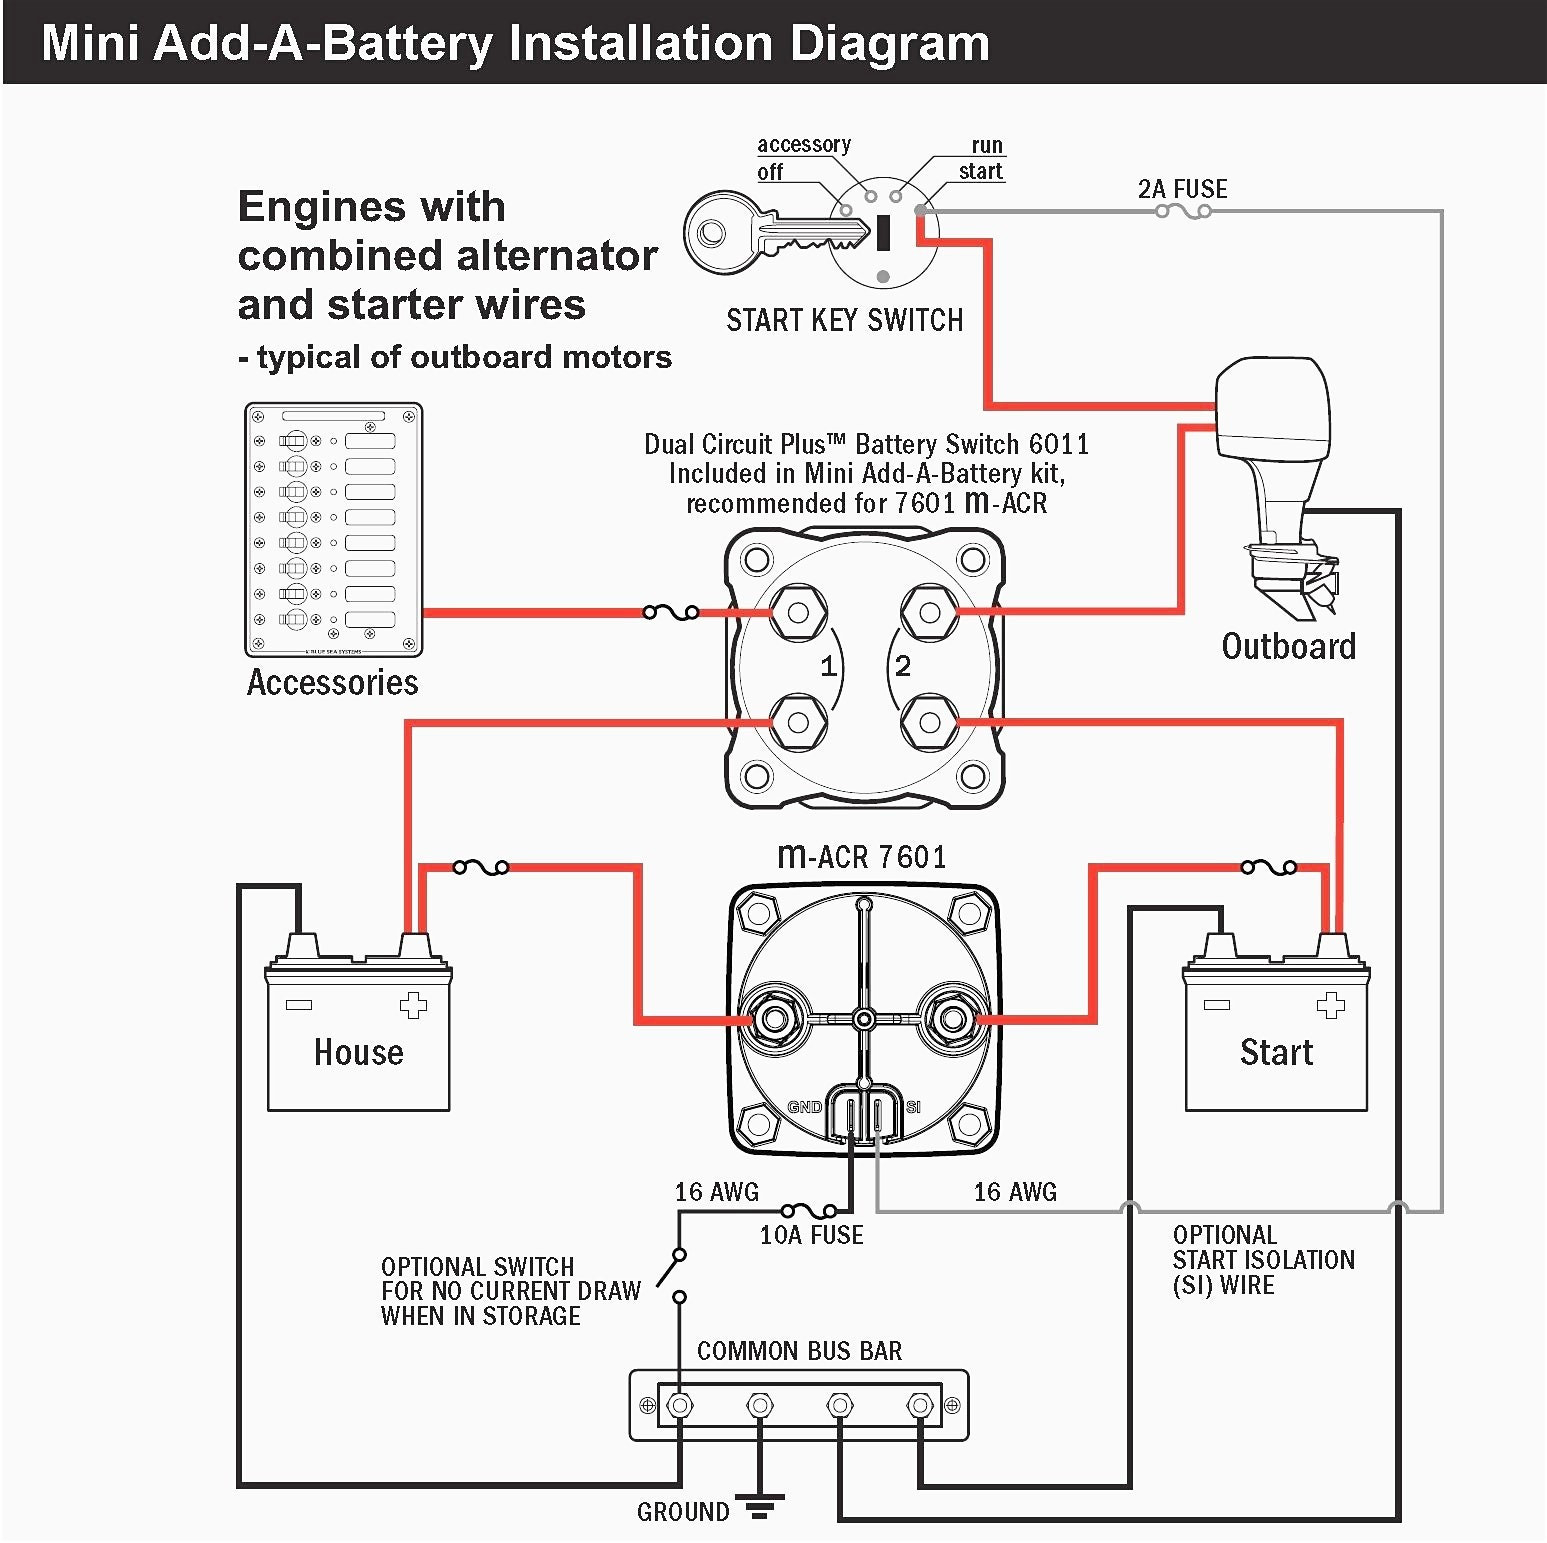 Wiring Diagram For Dual Rv Batteries - All Wiring Diagram Data - Dual Rv Battery Wiring Diagram